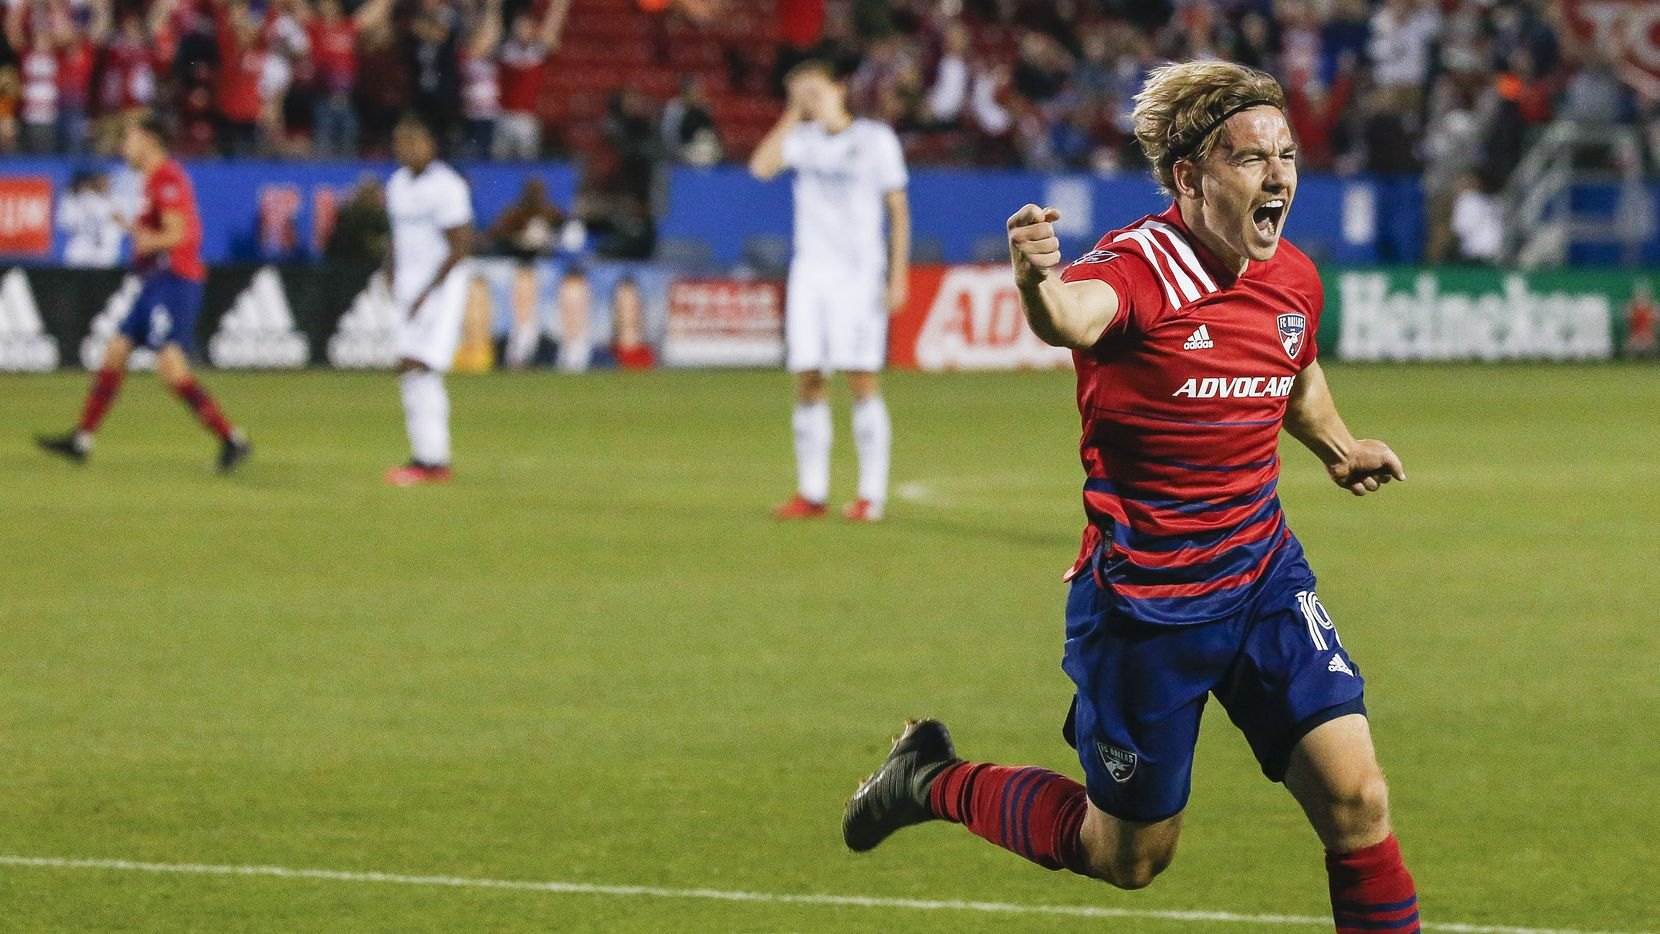 FC Dallas midfielder Paxton Pomykal (19) celebrates a goal during the second half of an MLS soccer match between FC Dallas and Philadelphia Union on Saturday, Feb. 29, 2020 at Toyota Stadium in Frisco, Texas.